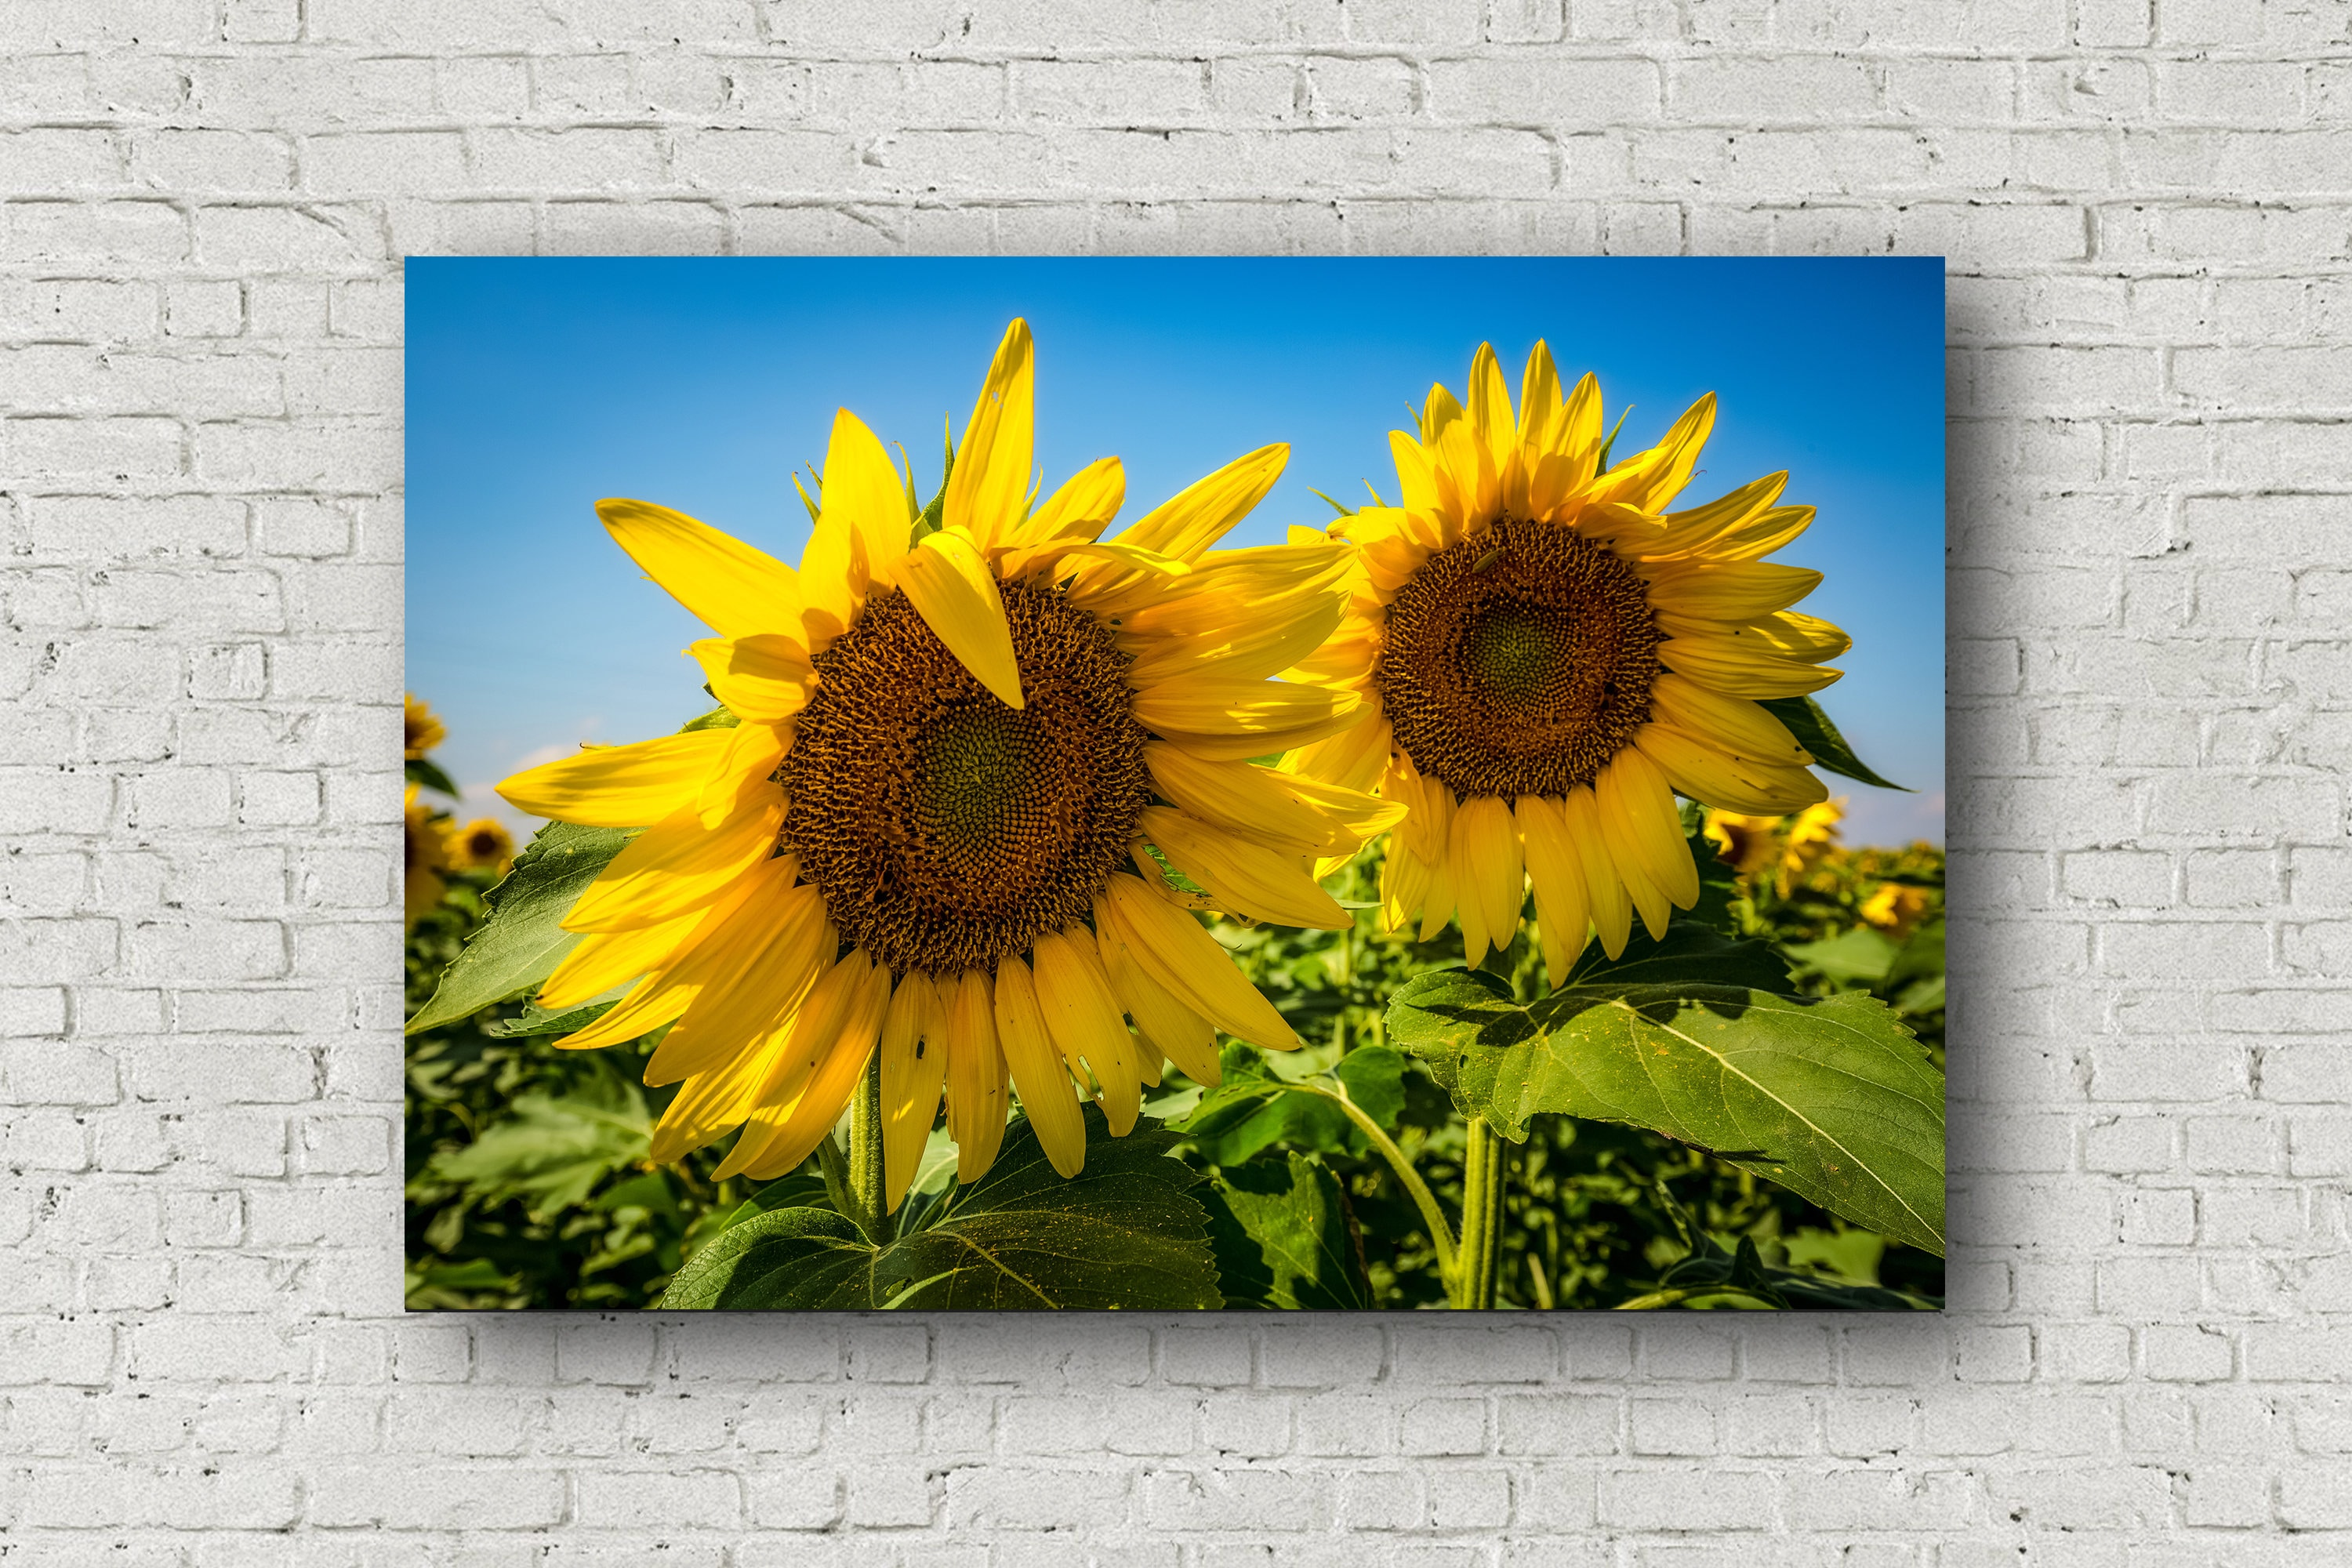 Sunflower Canvas Photography Wall Art Gallery Wrapped Canvas | Etsy